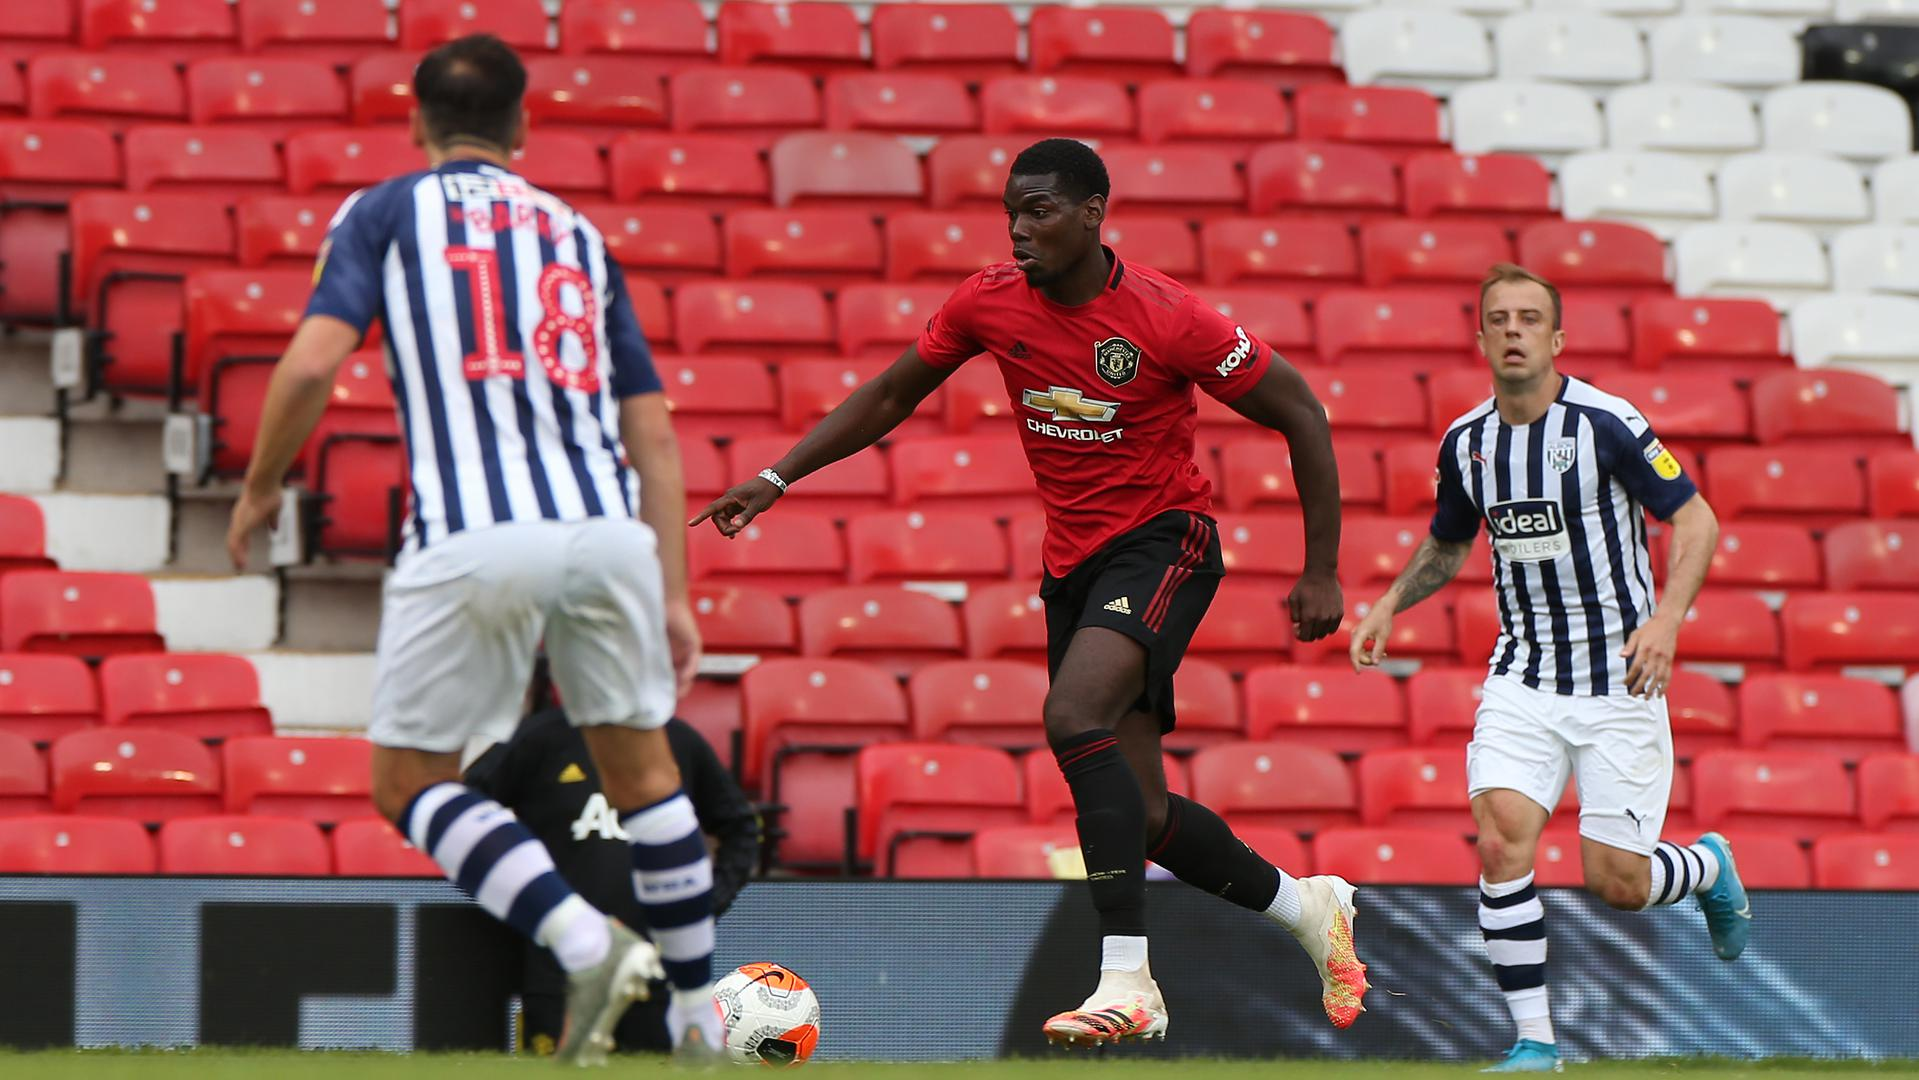 Man Utd V West Brom Friendly Game Match Reports From Old Trafford Manchester United